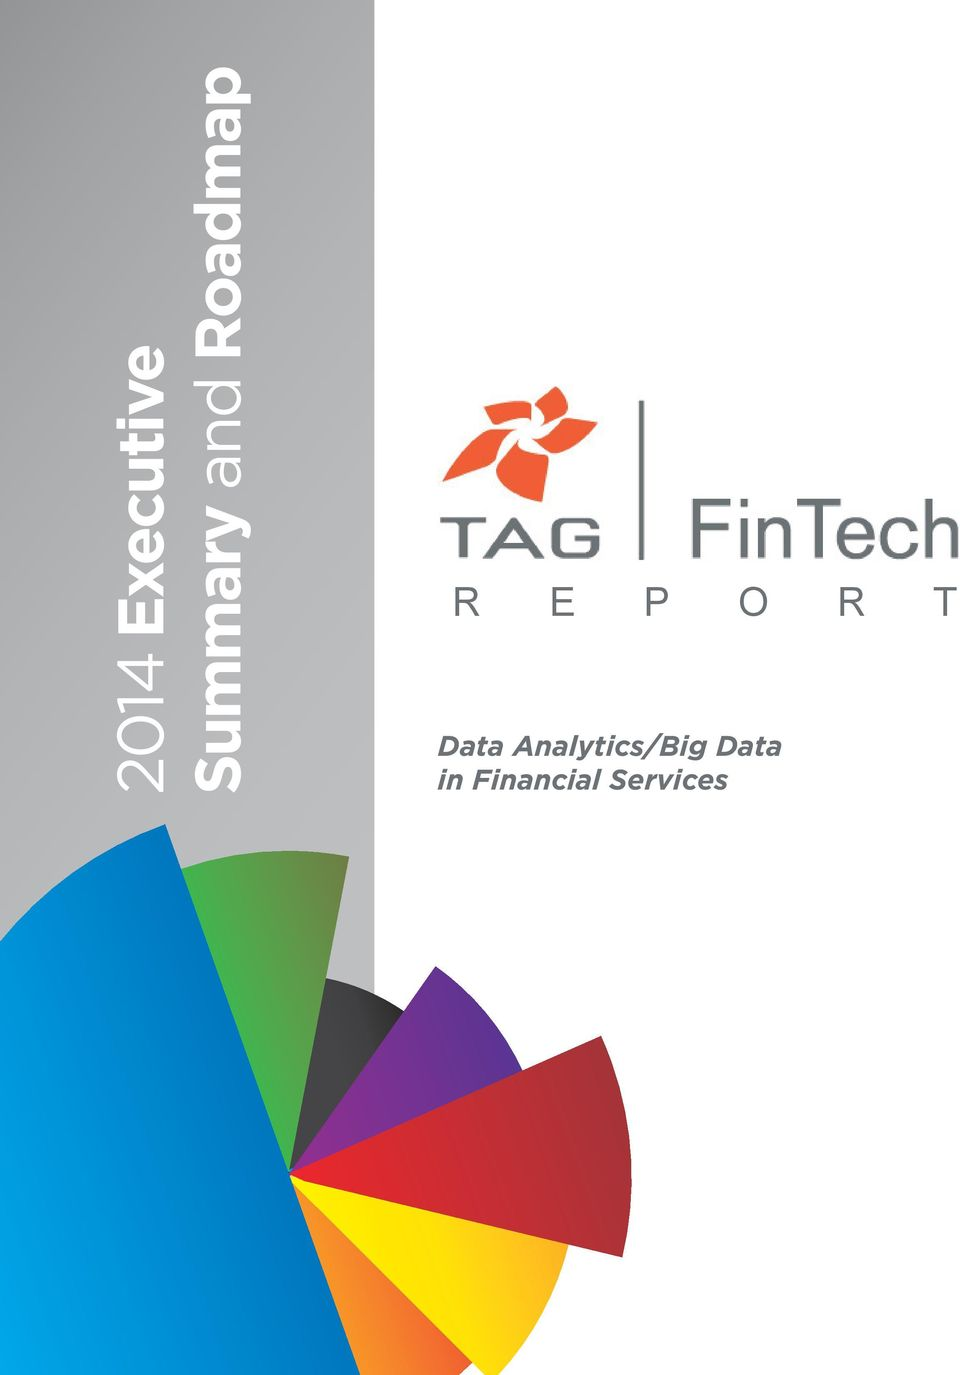 T Data Analytics/Big